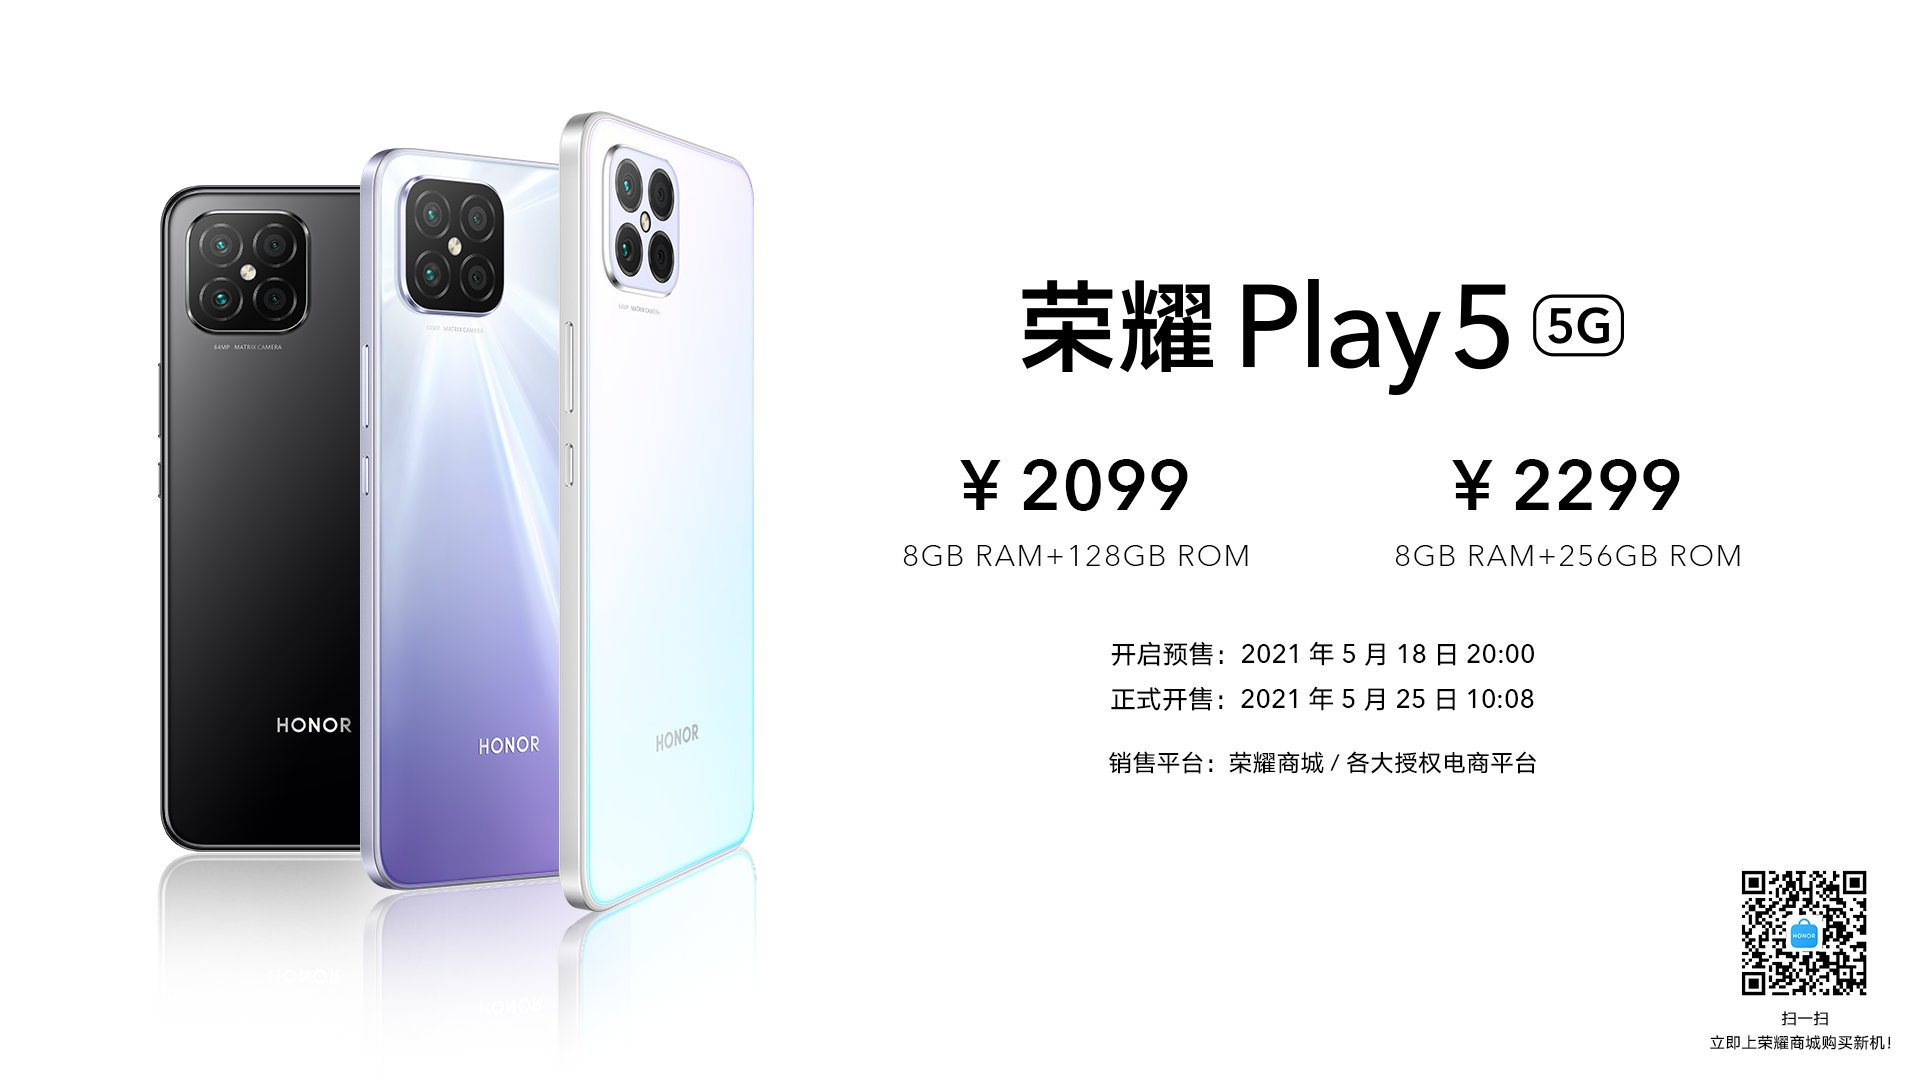 Honor Play 5 Price and Specifications